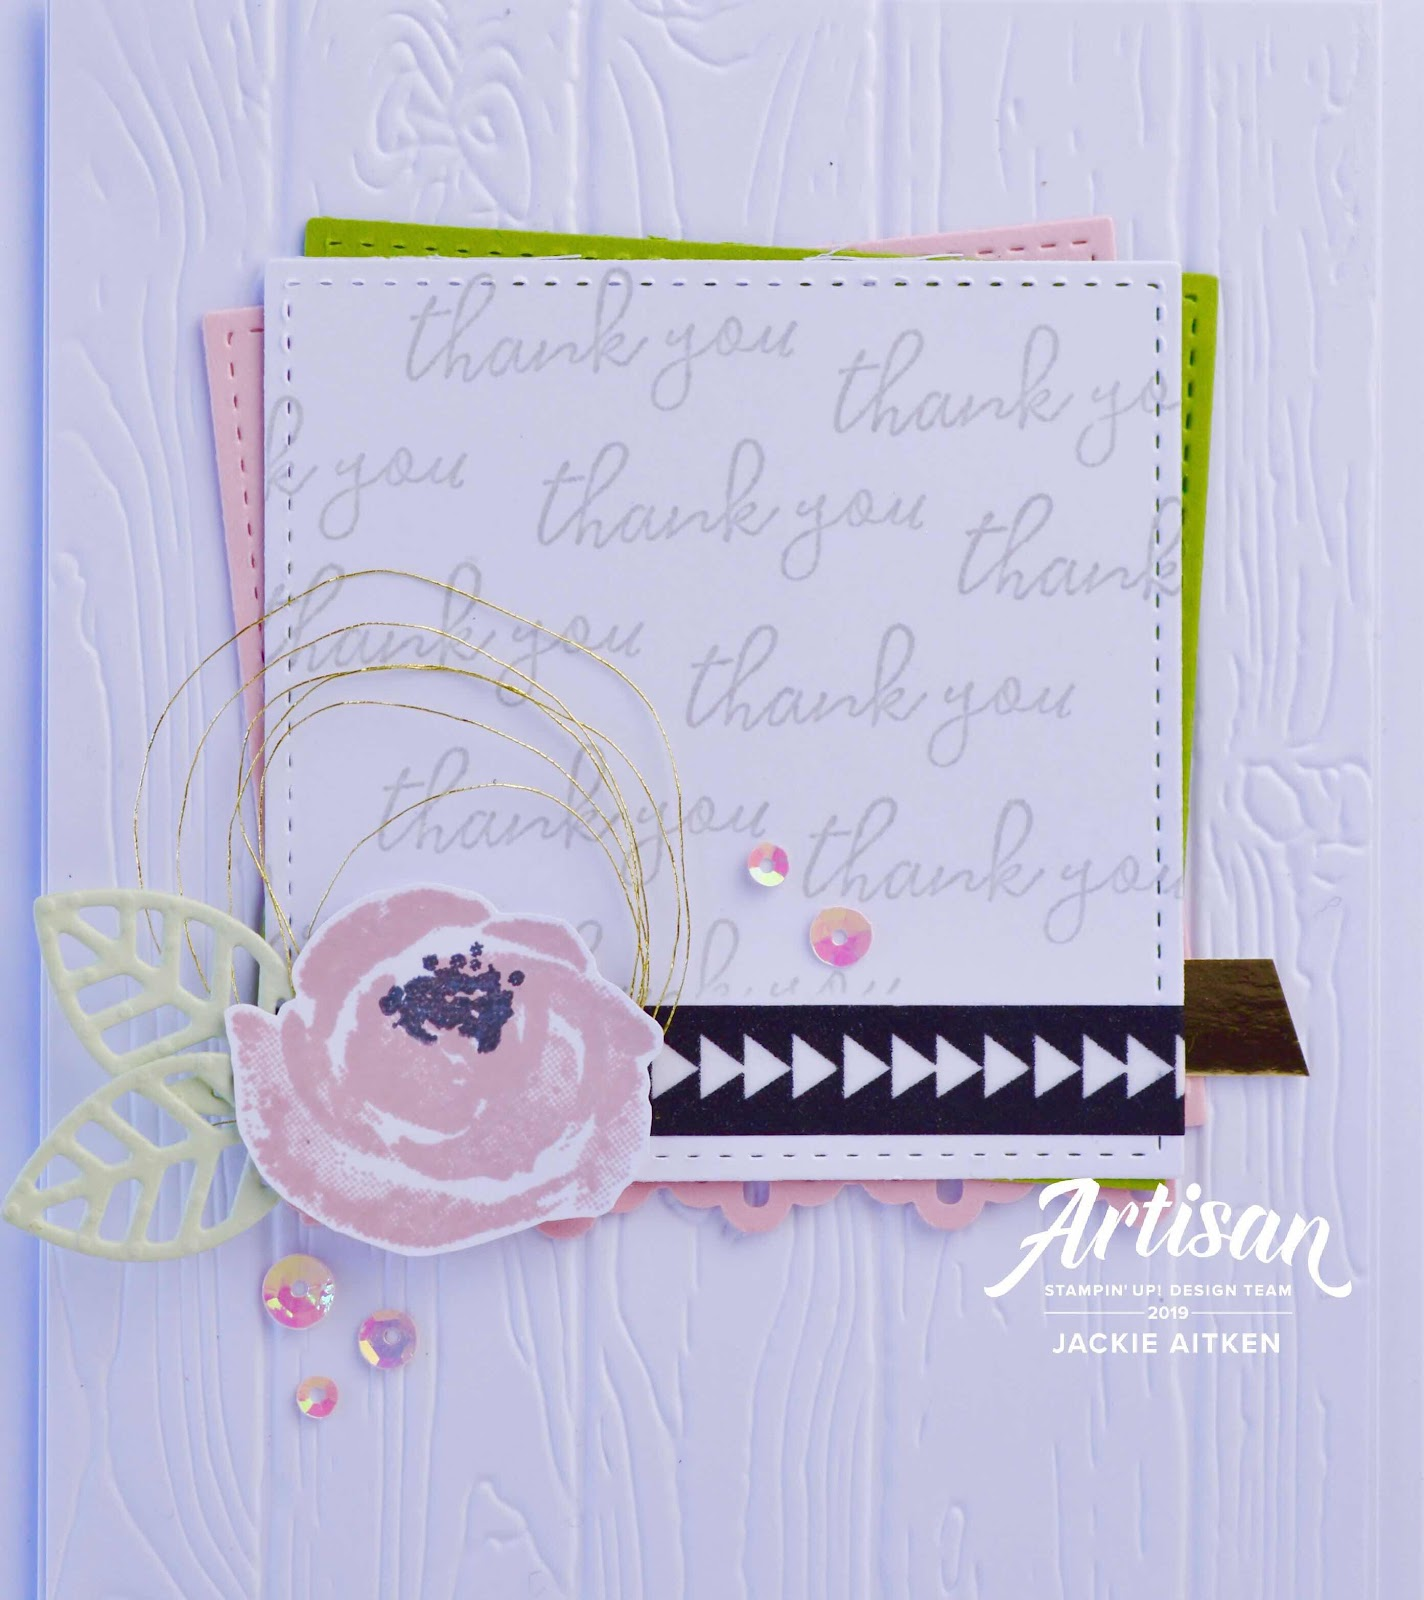 Jaxx Crafty Creations, Stampin' Up!, Floral Card, Just Add Ink Challenge, Choose Two Challenge, Washi Tape, Metallic Thread, Metallic Sequins, Beautiful Friendship, Pinewood Planks Embossing Folder,